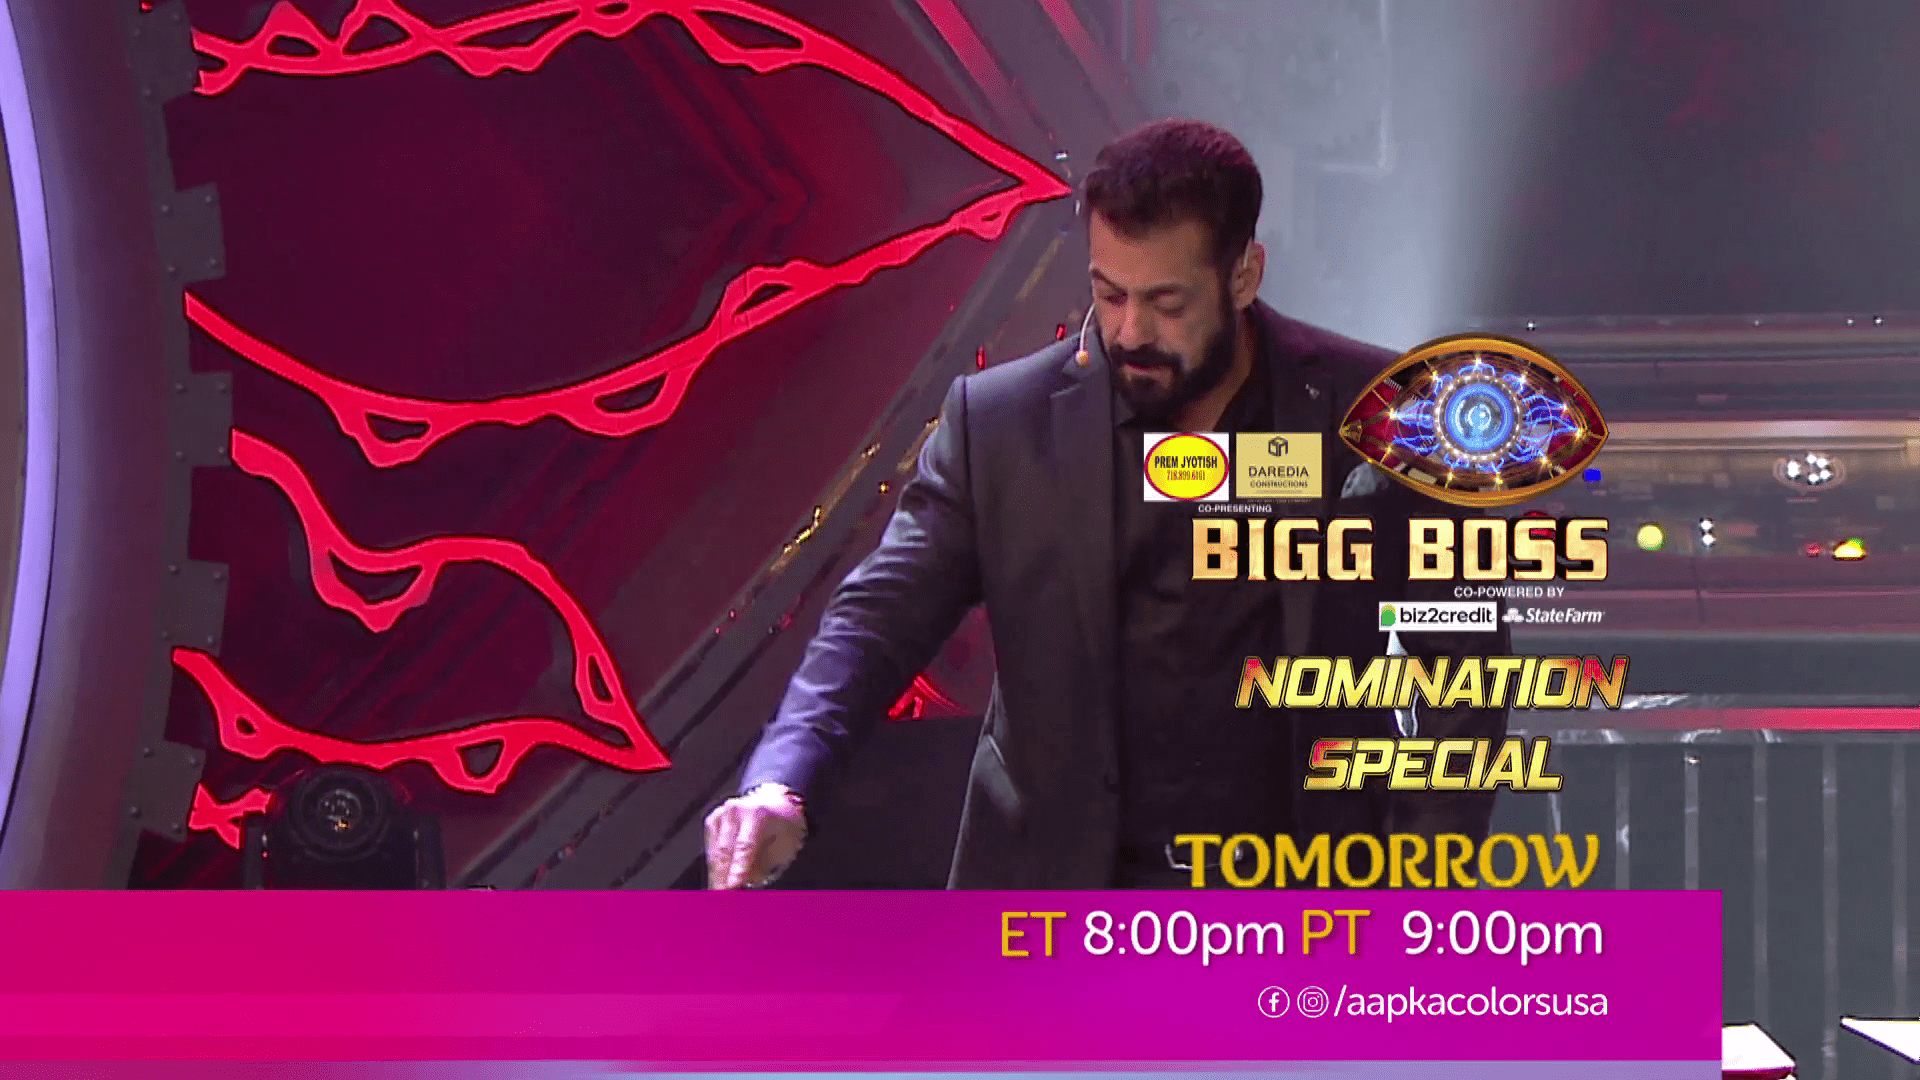 Watch Bigg Boss Nomination Special Tomorrow ET 8:00pm PT 9:00pm on Aapka Colors